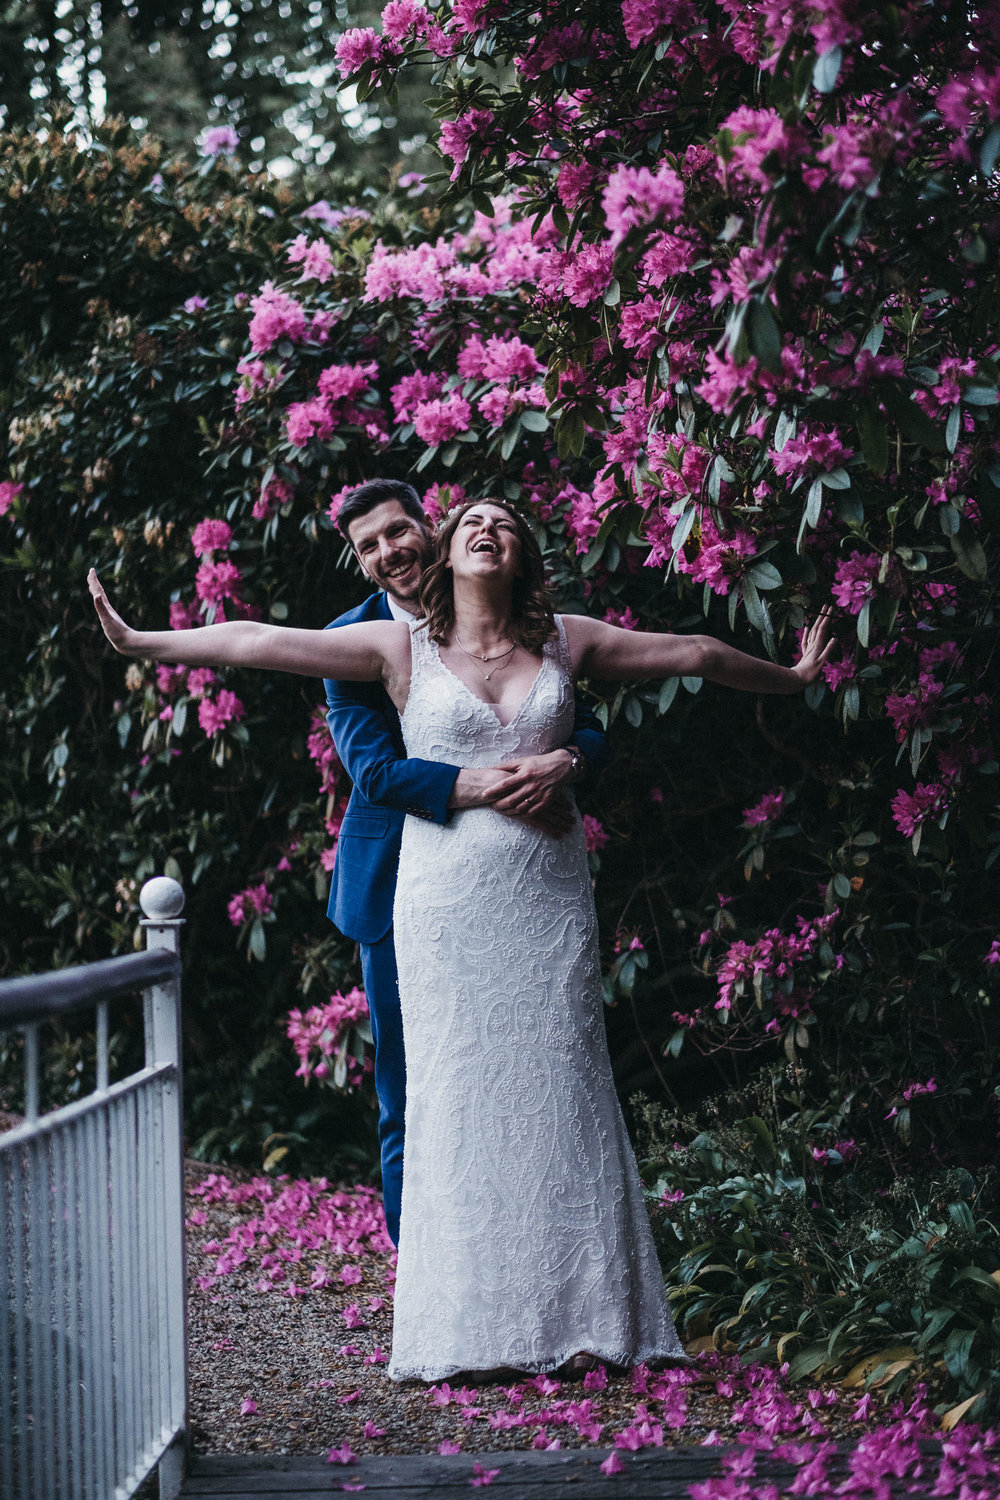 Bride and groom laughing with pink flowers in background